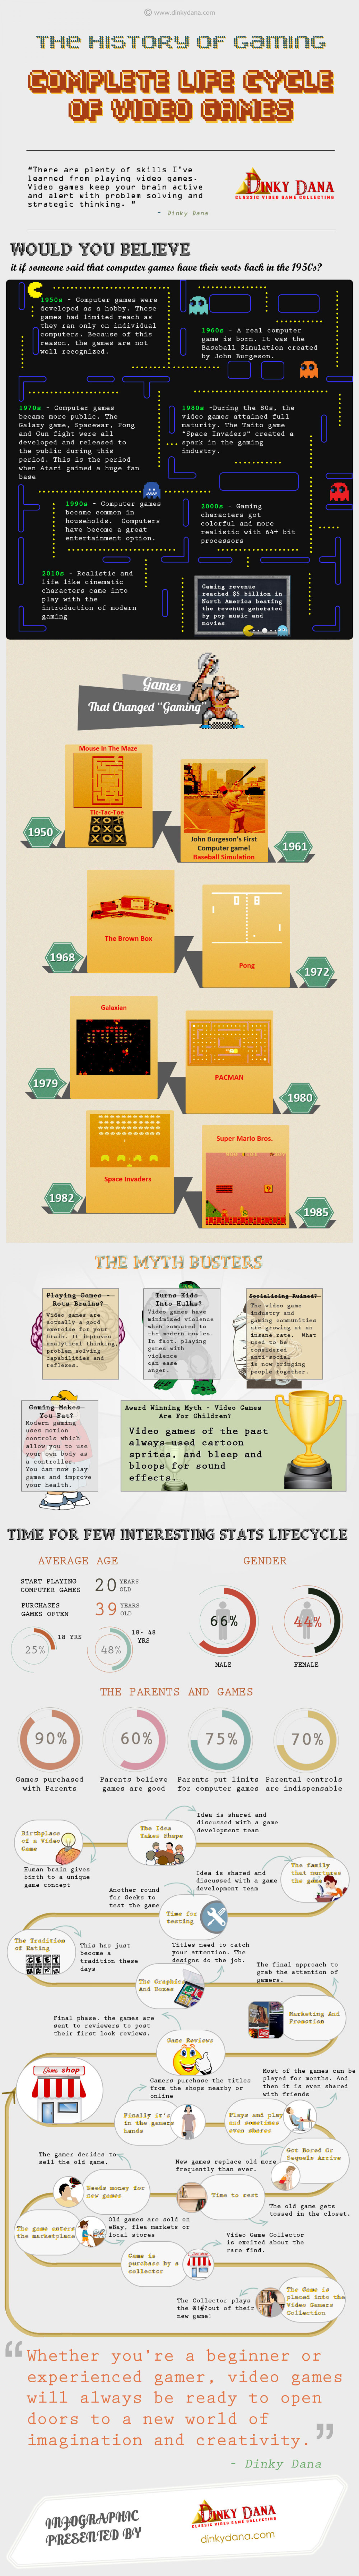 Life of a Video Game Infographic